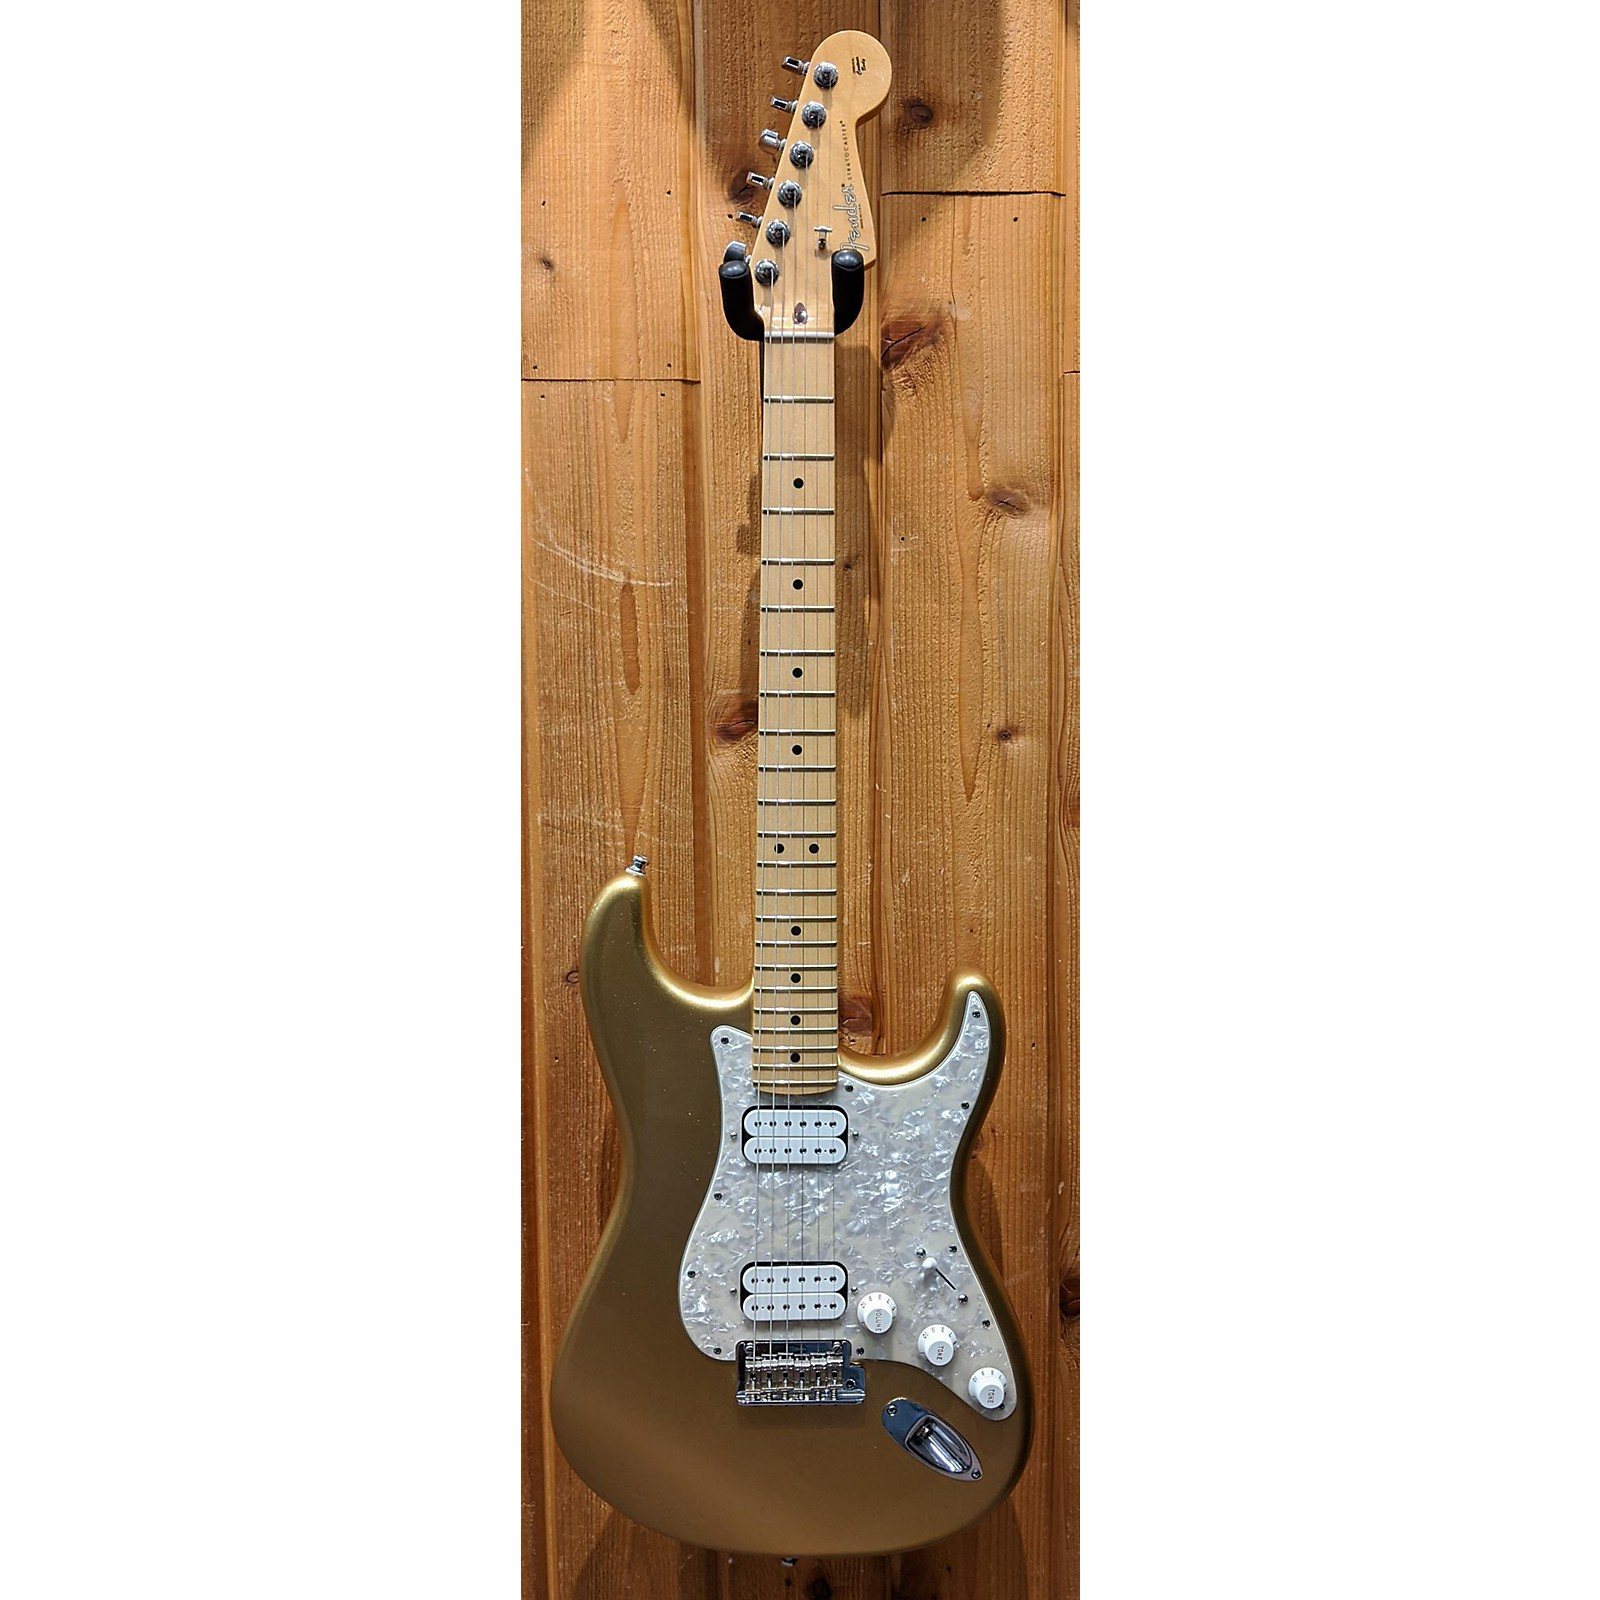 Fender 2014 American Standard Stratocaster Limited Edition